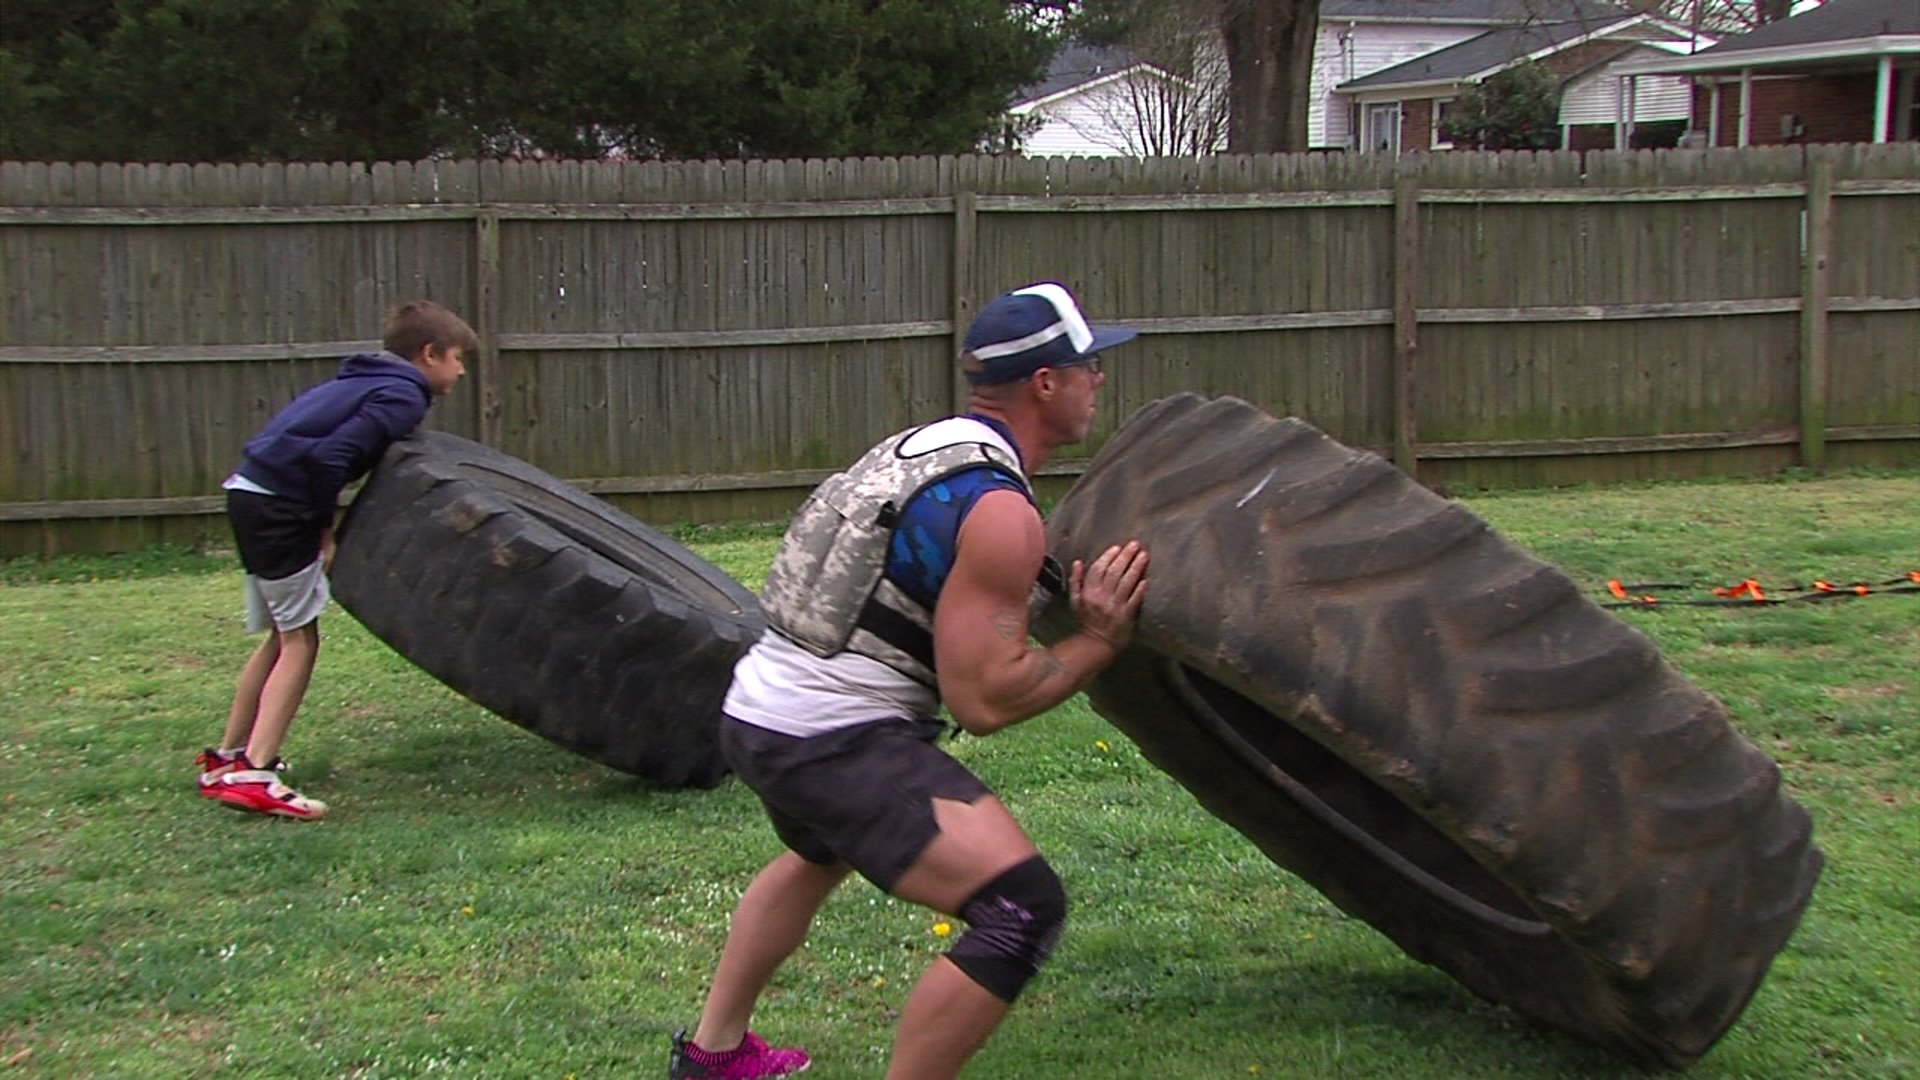 Greensboro father, son set up backyard gym after North Carolina closes all gyms.